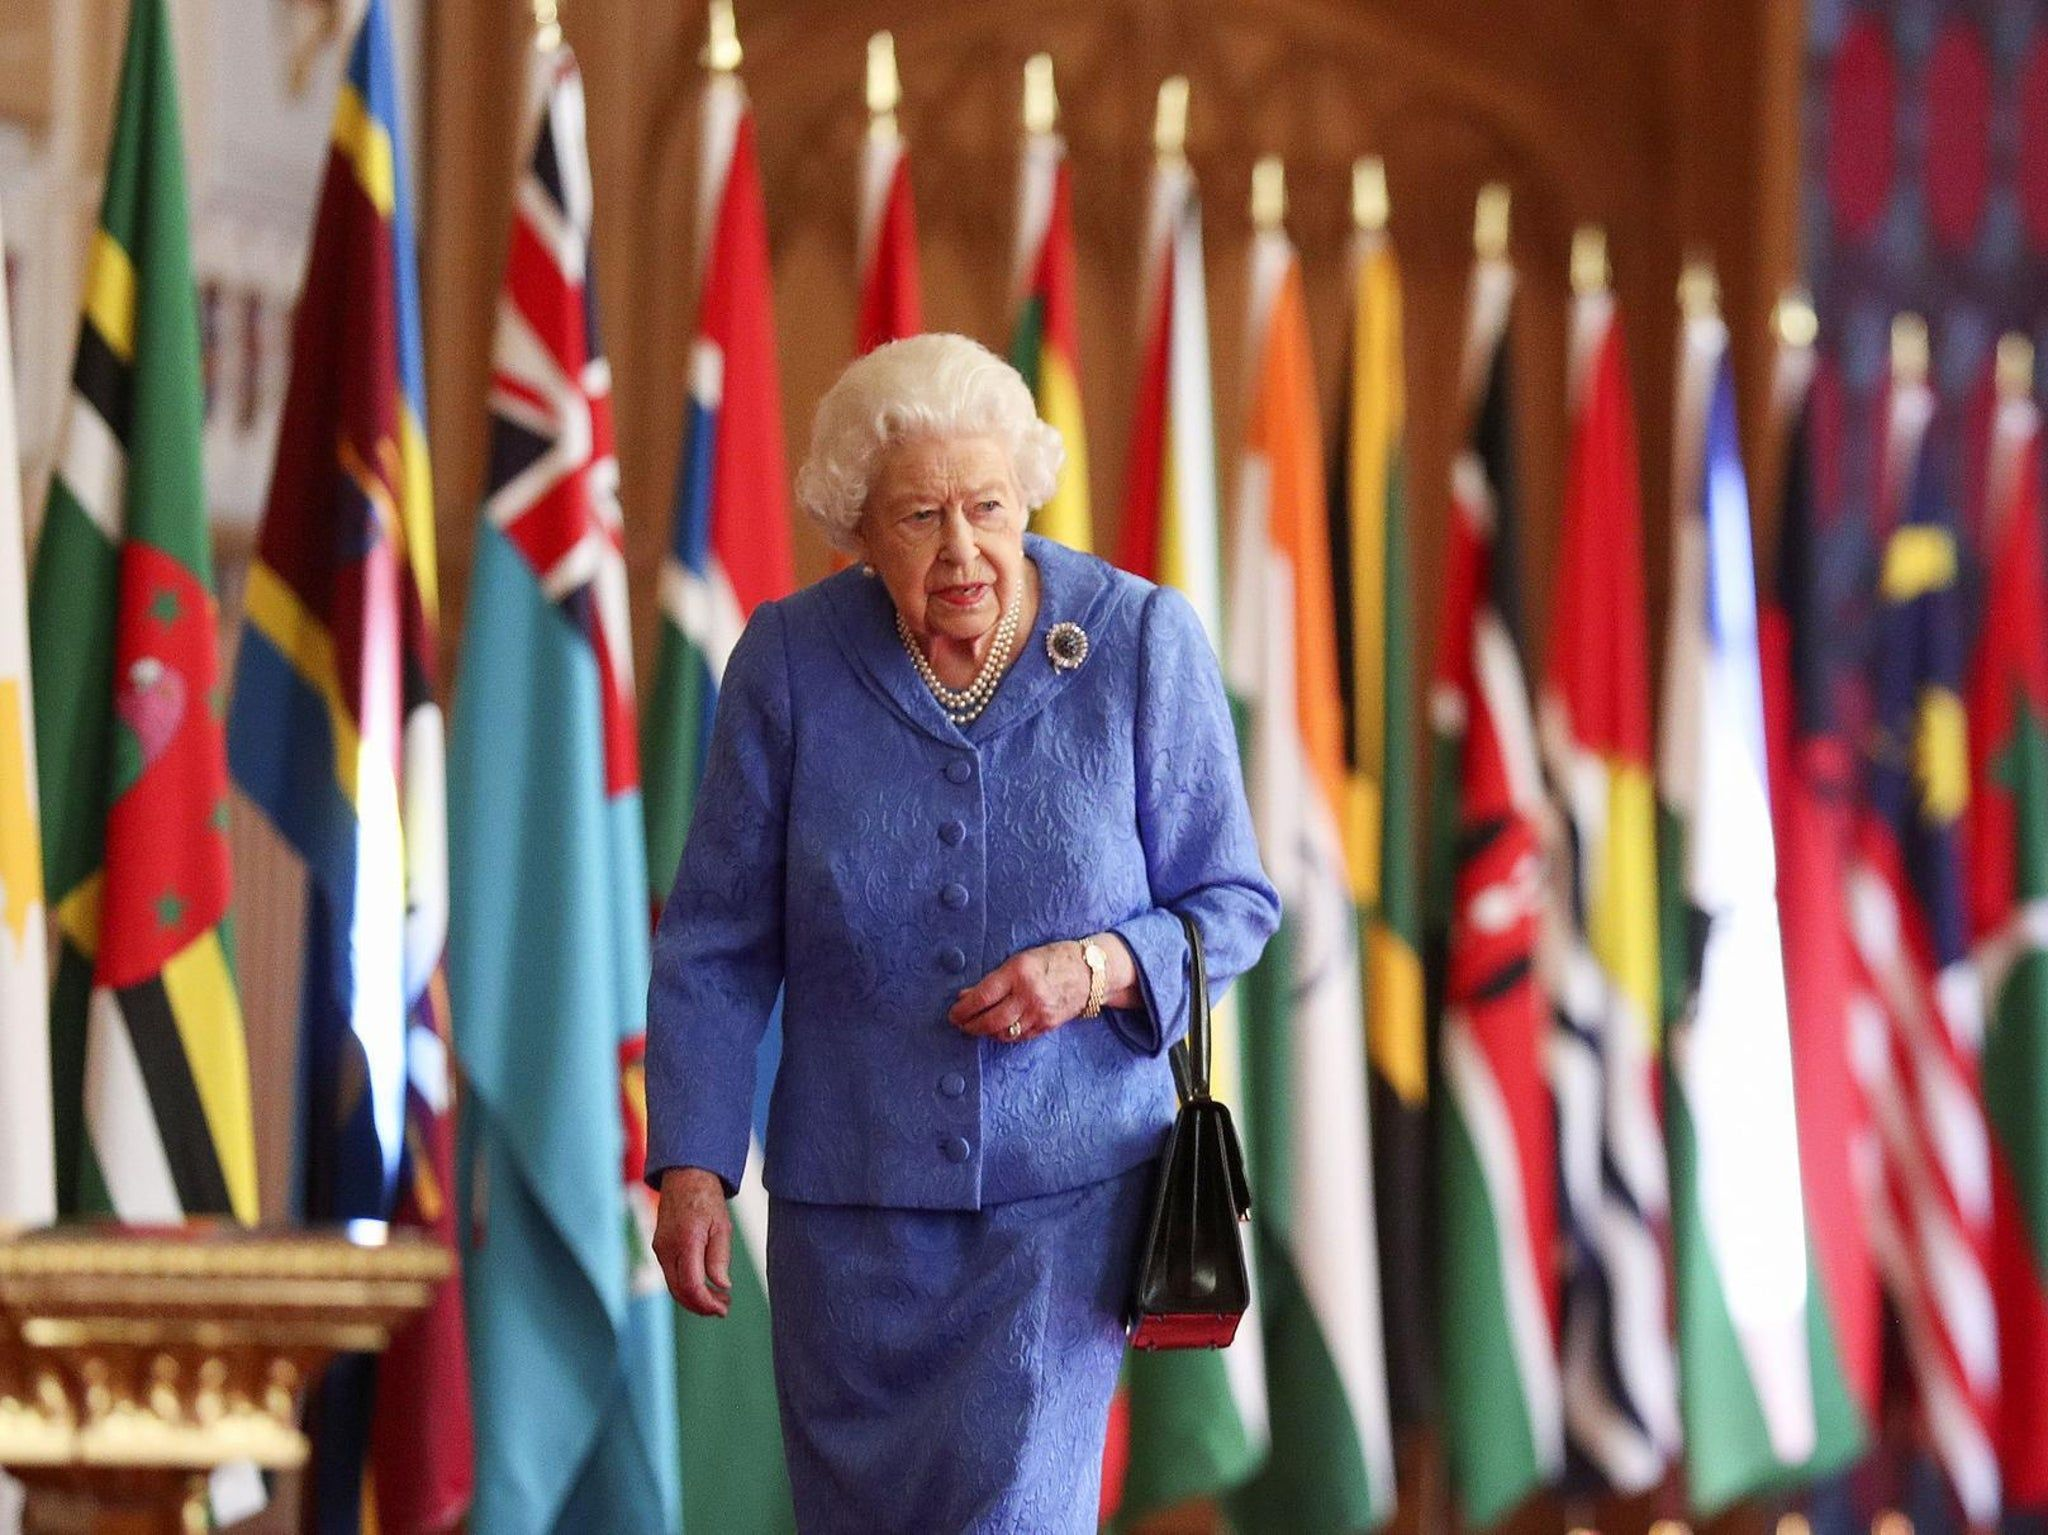 """The Queen Gives Commonwealth Speech About """"Dedication to Duty"""" Ahead of Sussexes' Oprah Interview"""